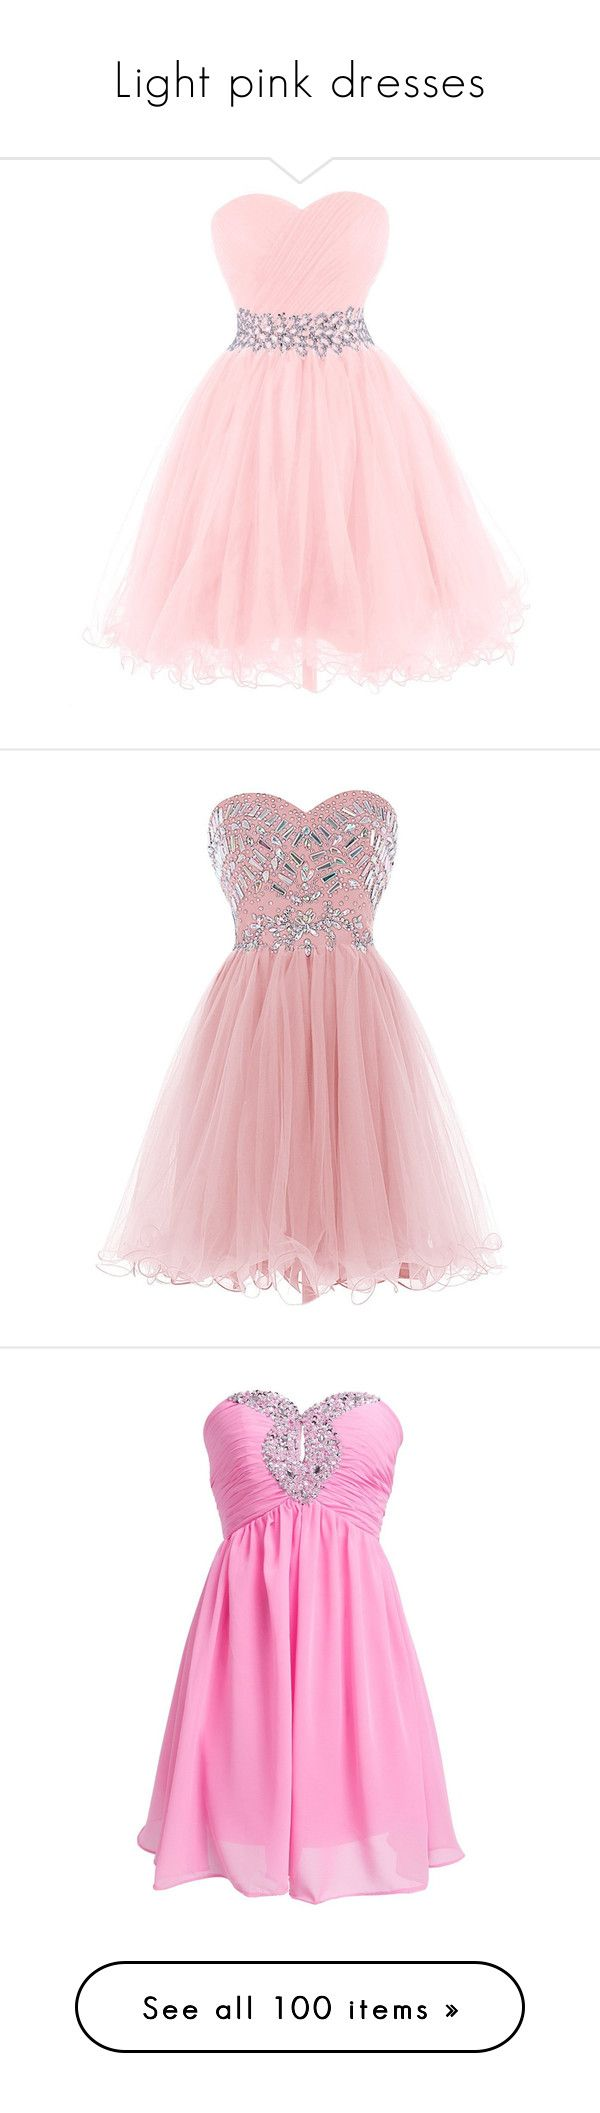 """Light pink dresses"" by megsjessd99 ❤ liked on Polyvore featuring dresses, gowns, prom dresses, prom gowns, pink ball gown, royal blue homecoming dresses, short prom dresses, beaded dress, pink cocktail dress and beaded cocktail dress"